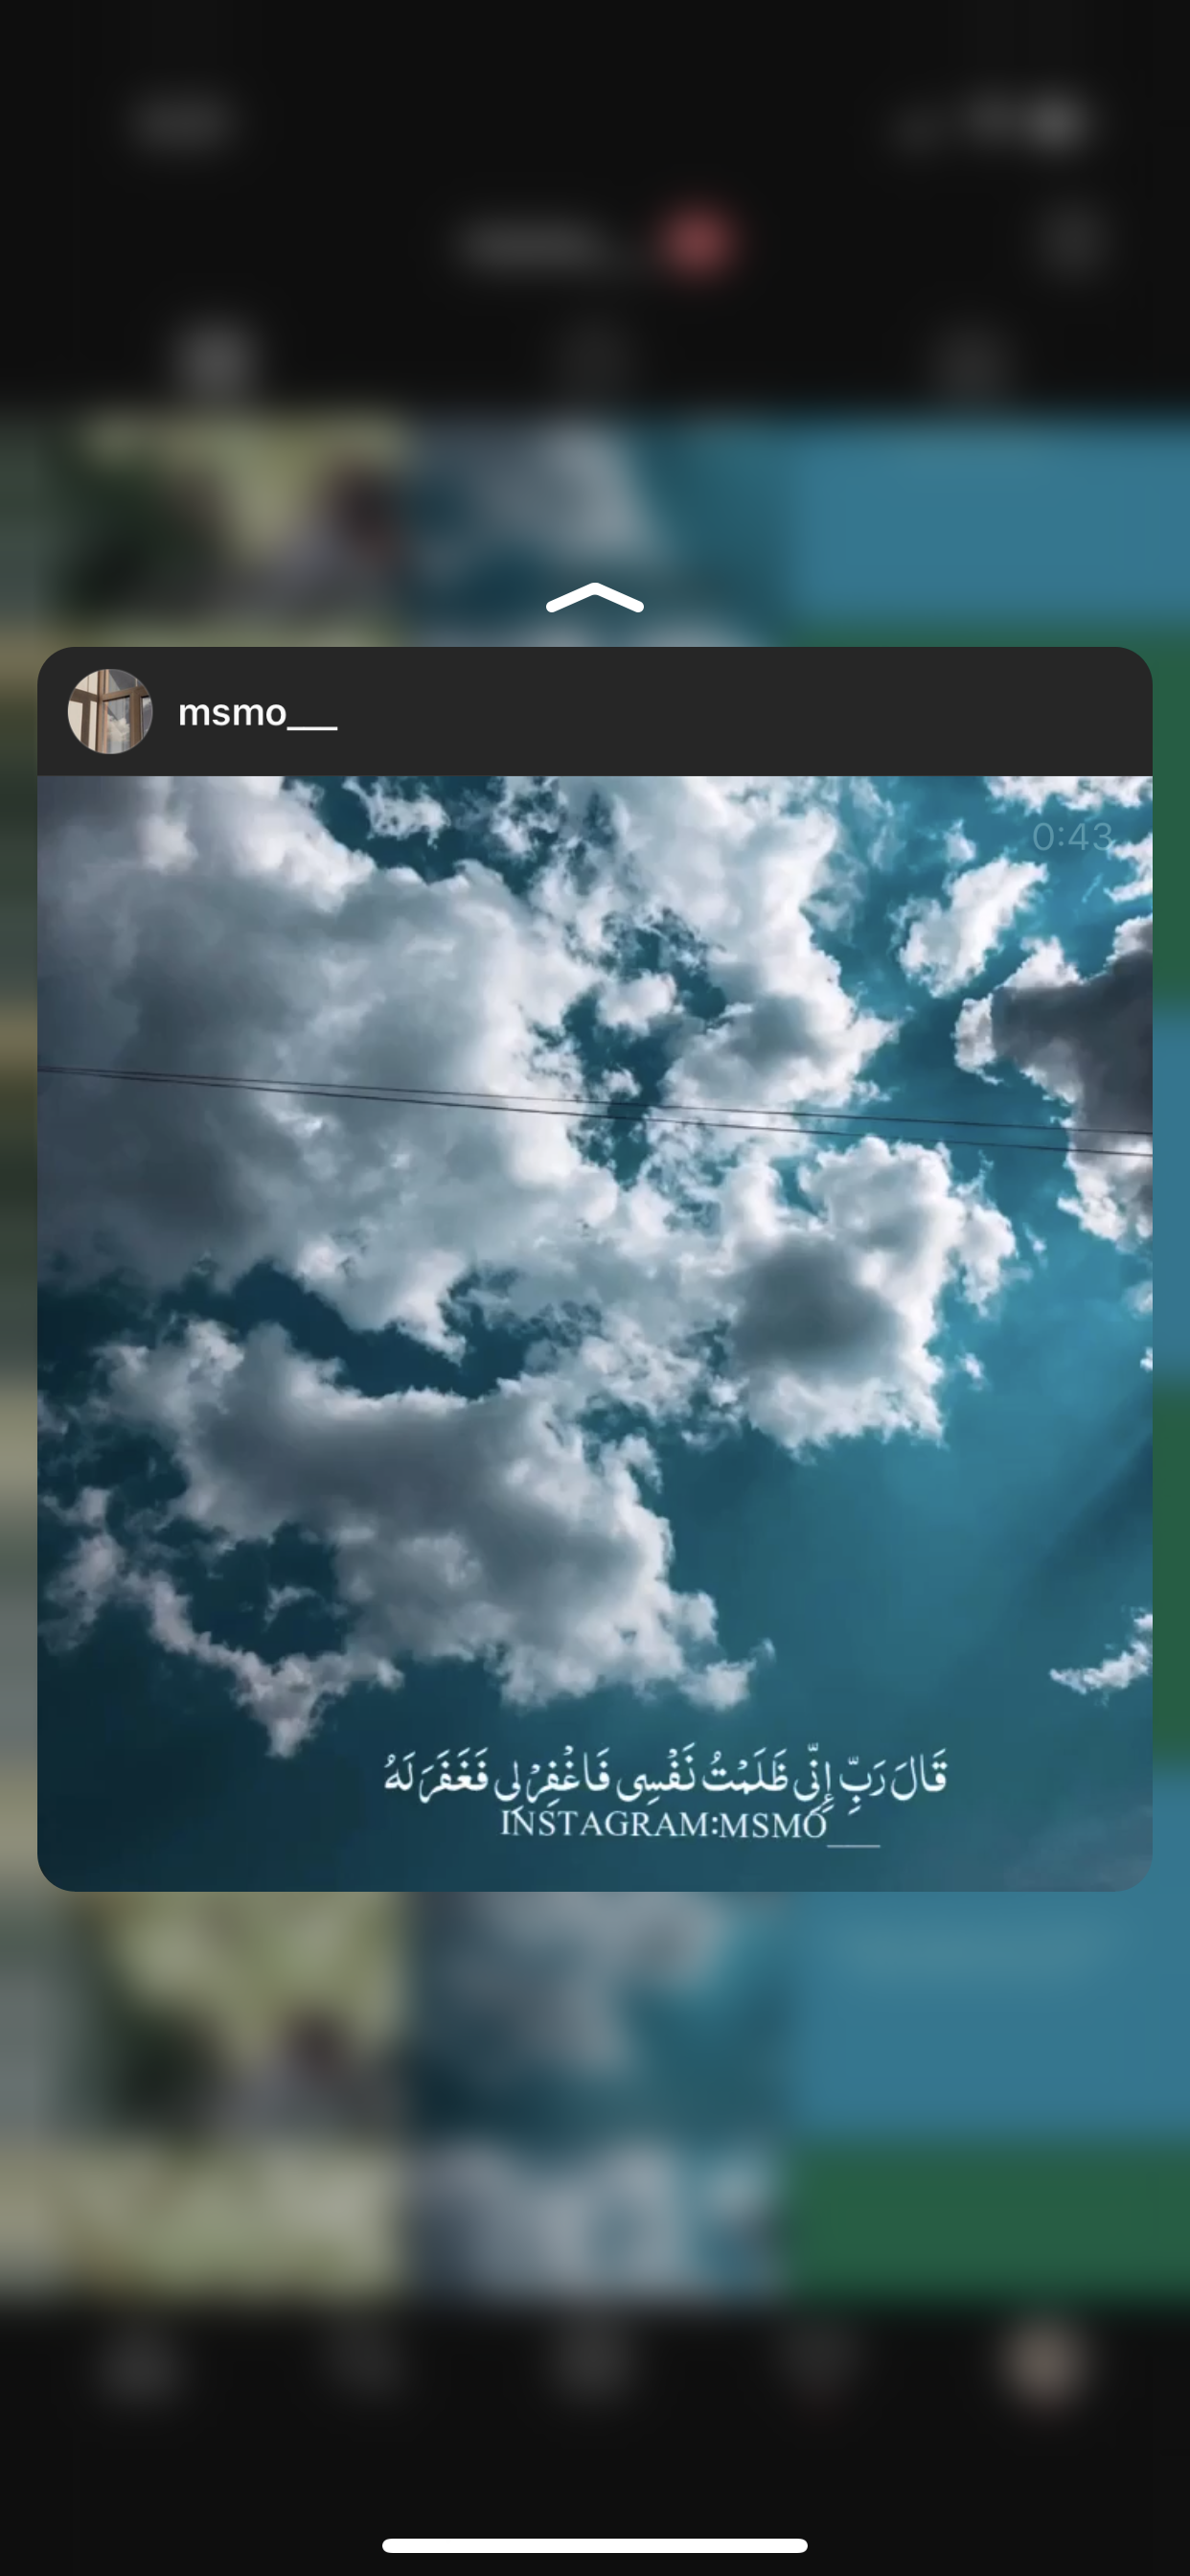 Instagram Msmo Instagram Screenshots Desktop Screenshot